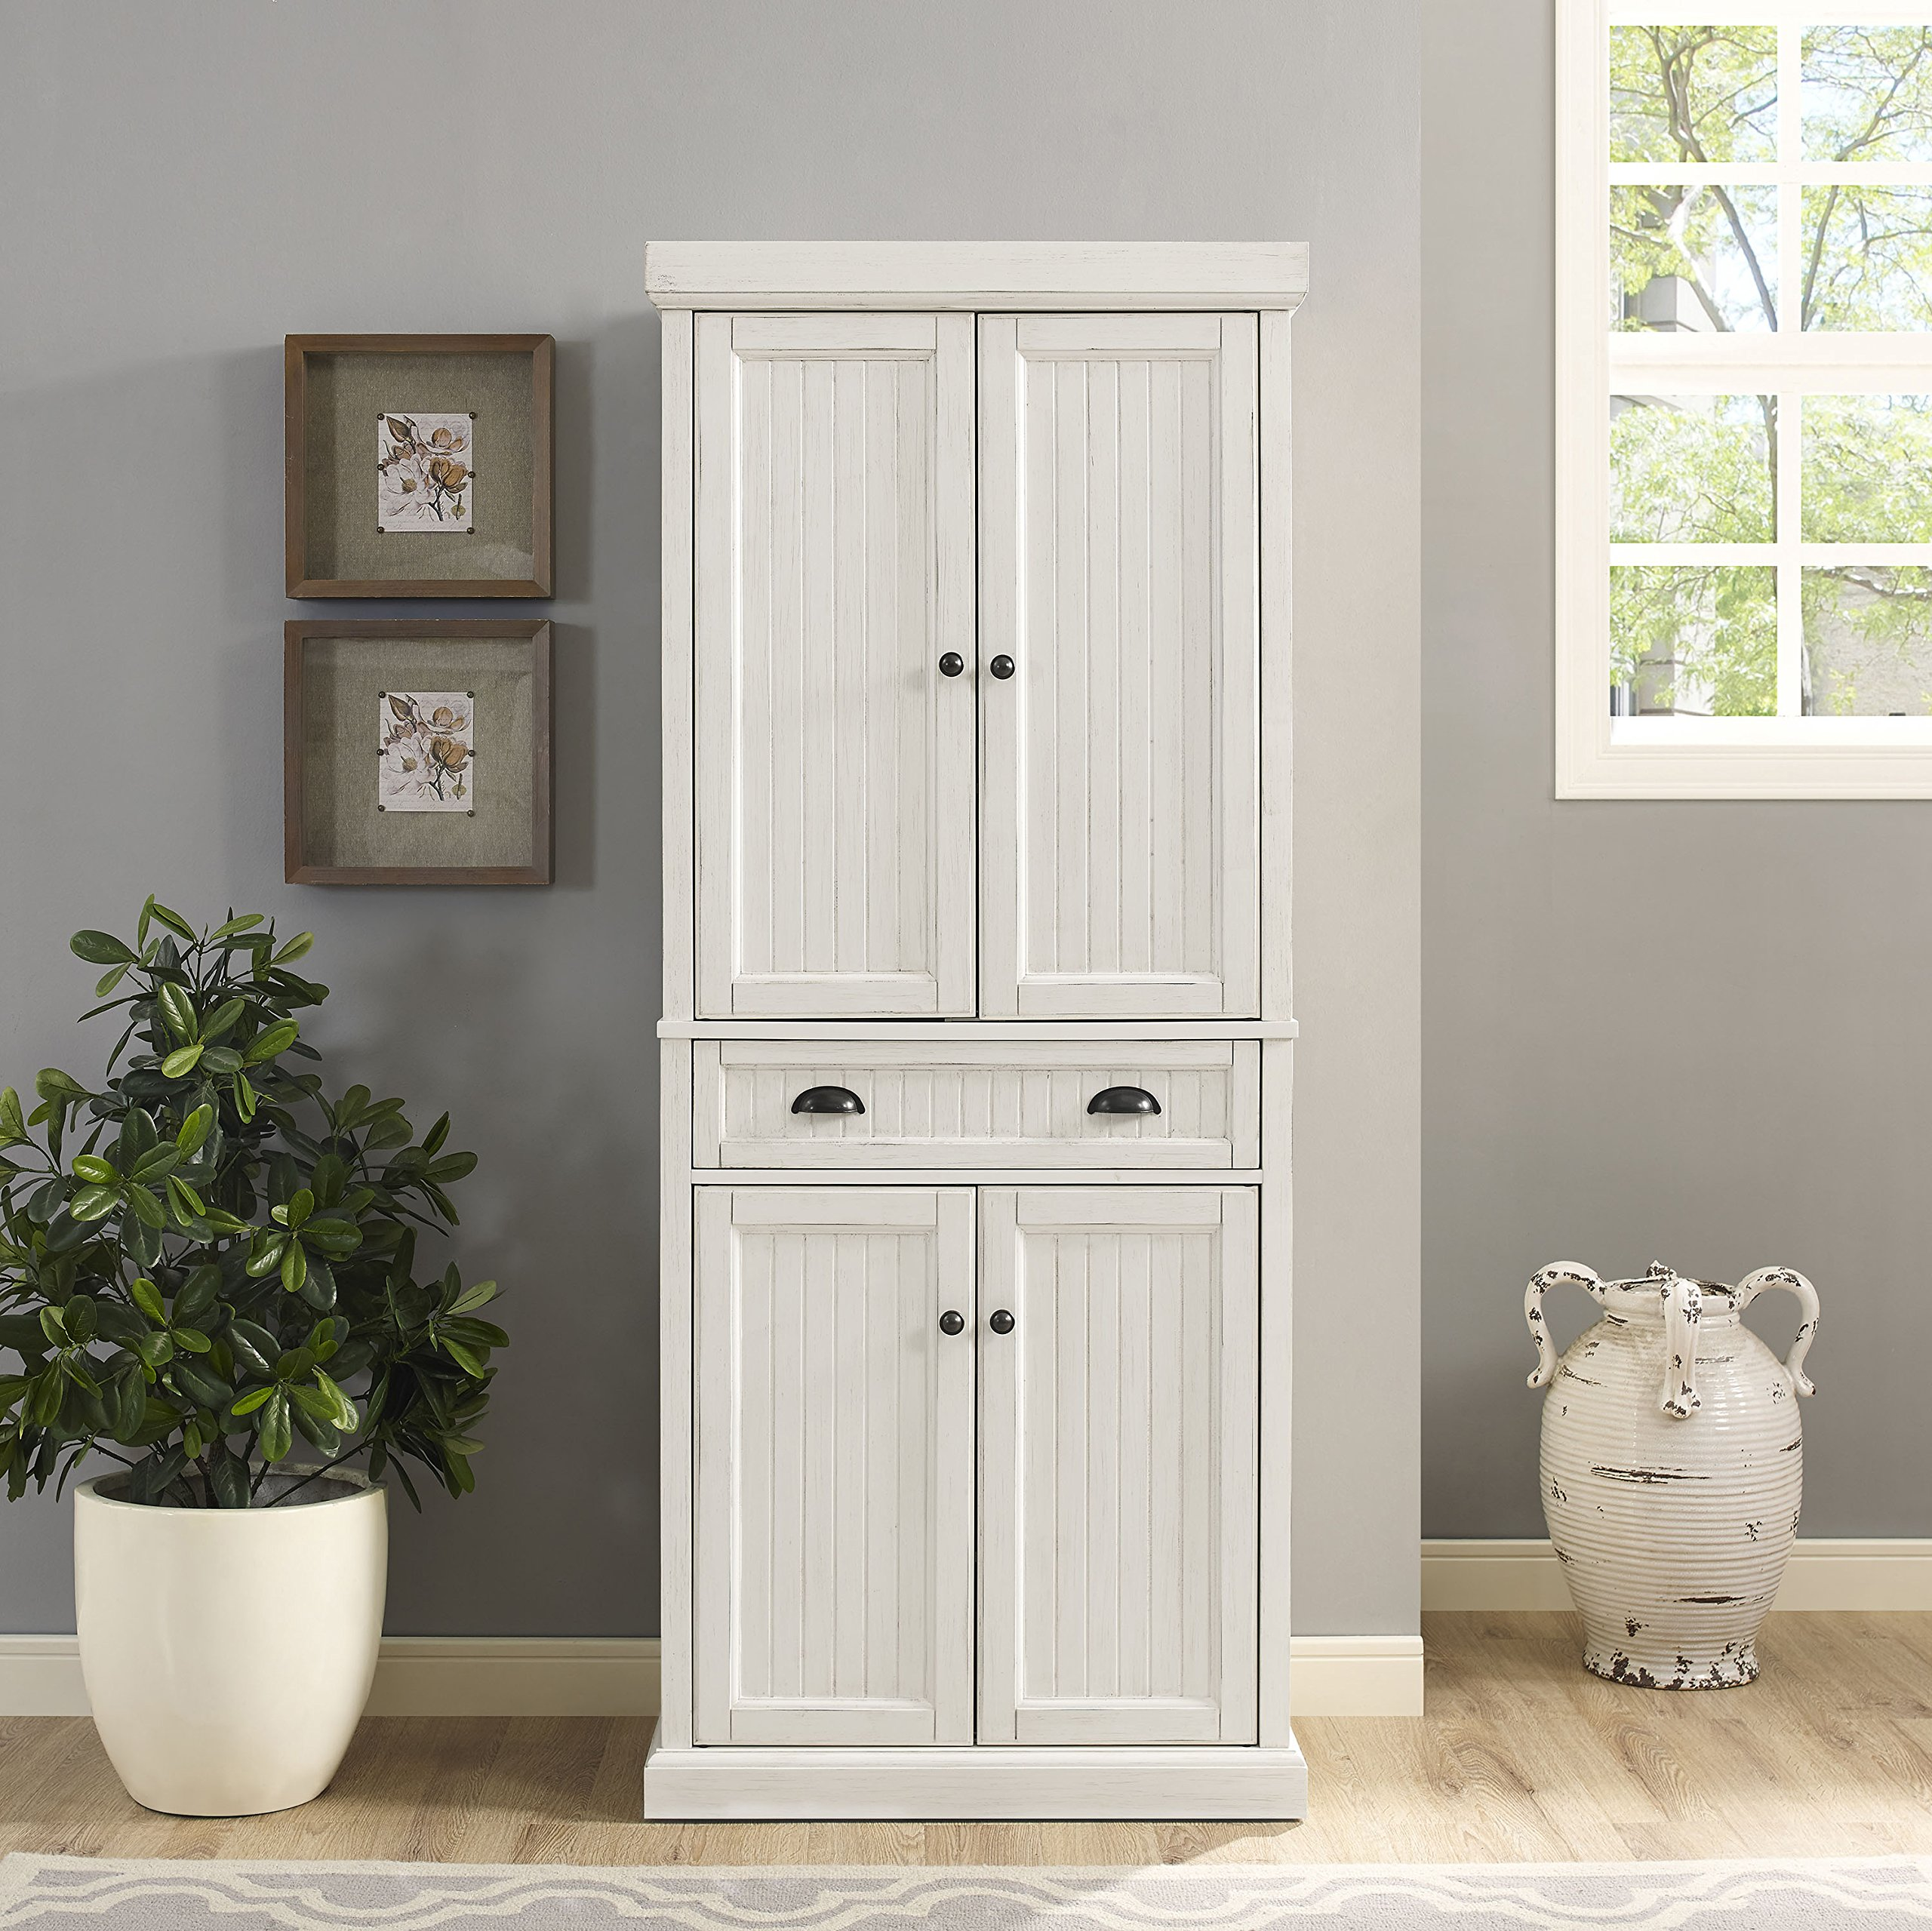 Crosley Furniture Seaside Kitchen Pantry Cabinet - Distressed White by Crosley Furniture (Image #7)